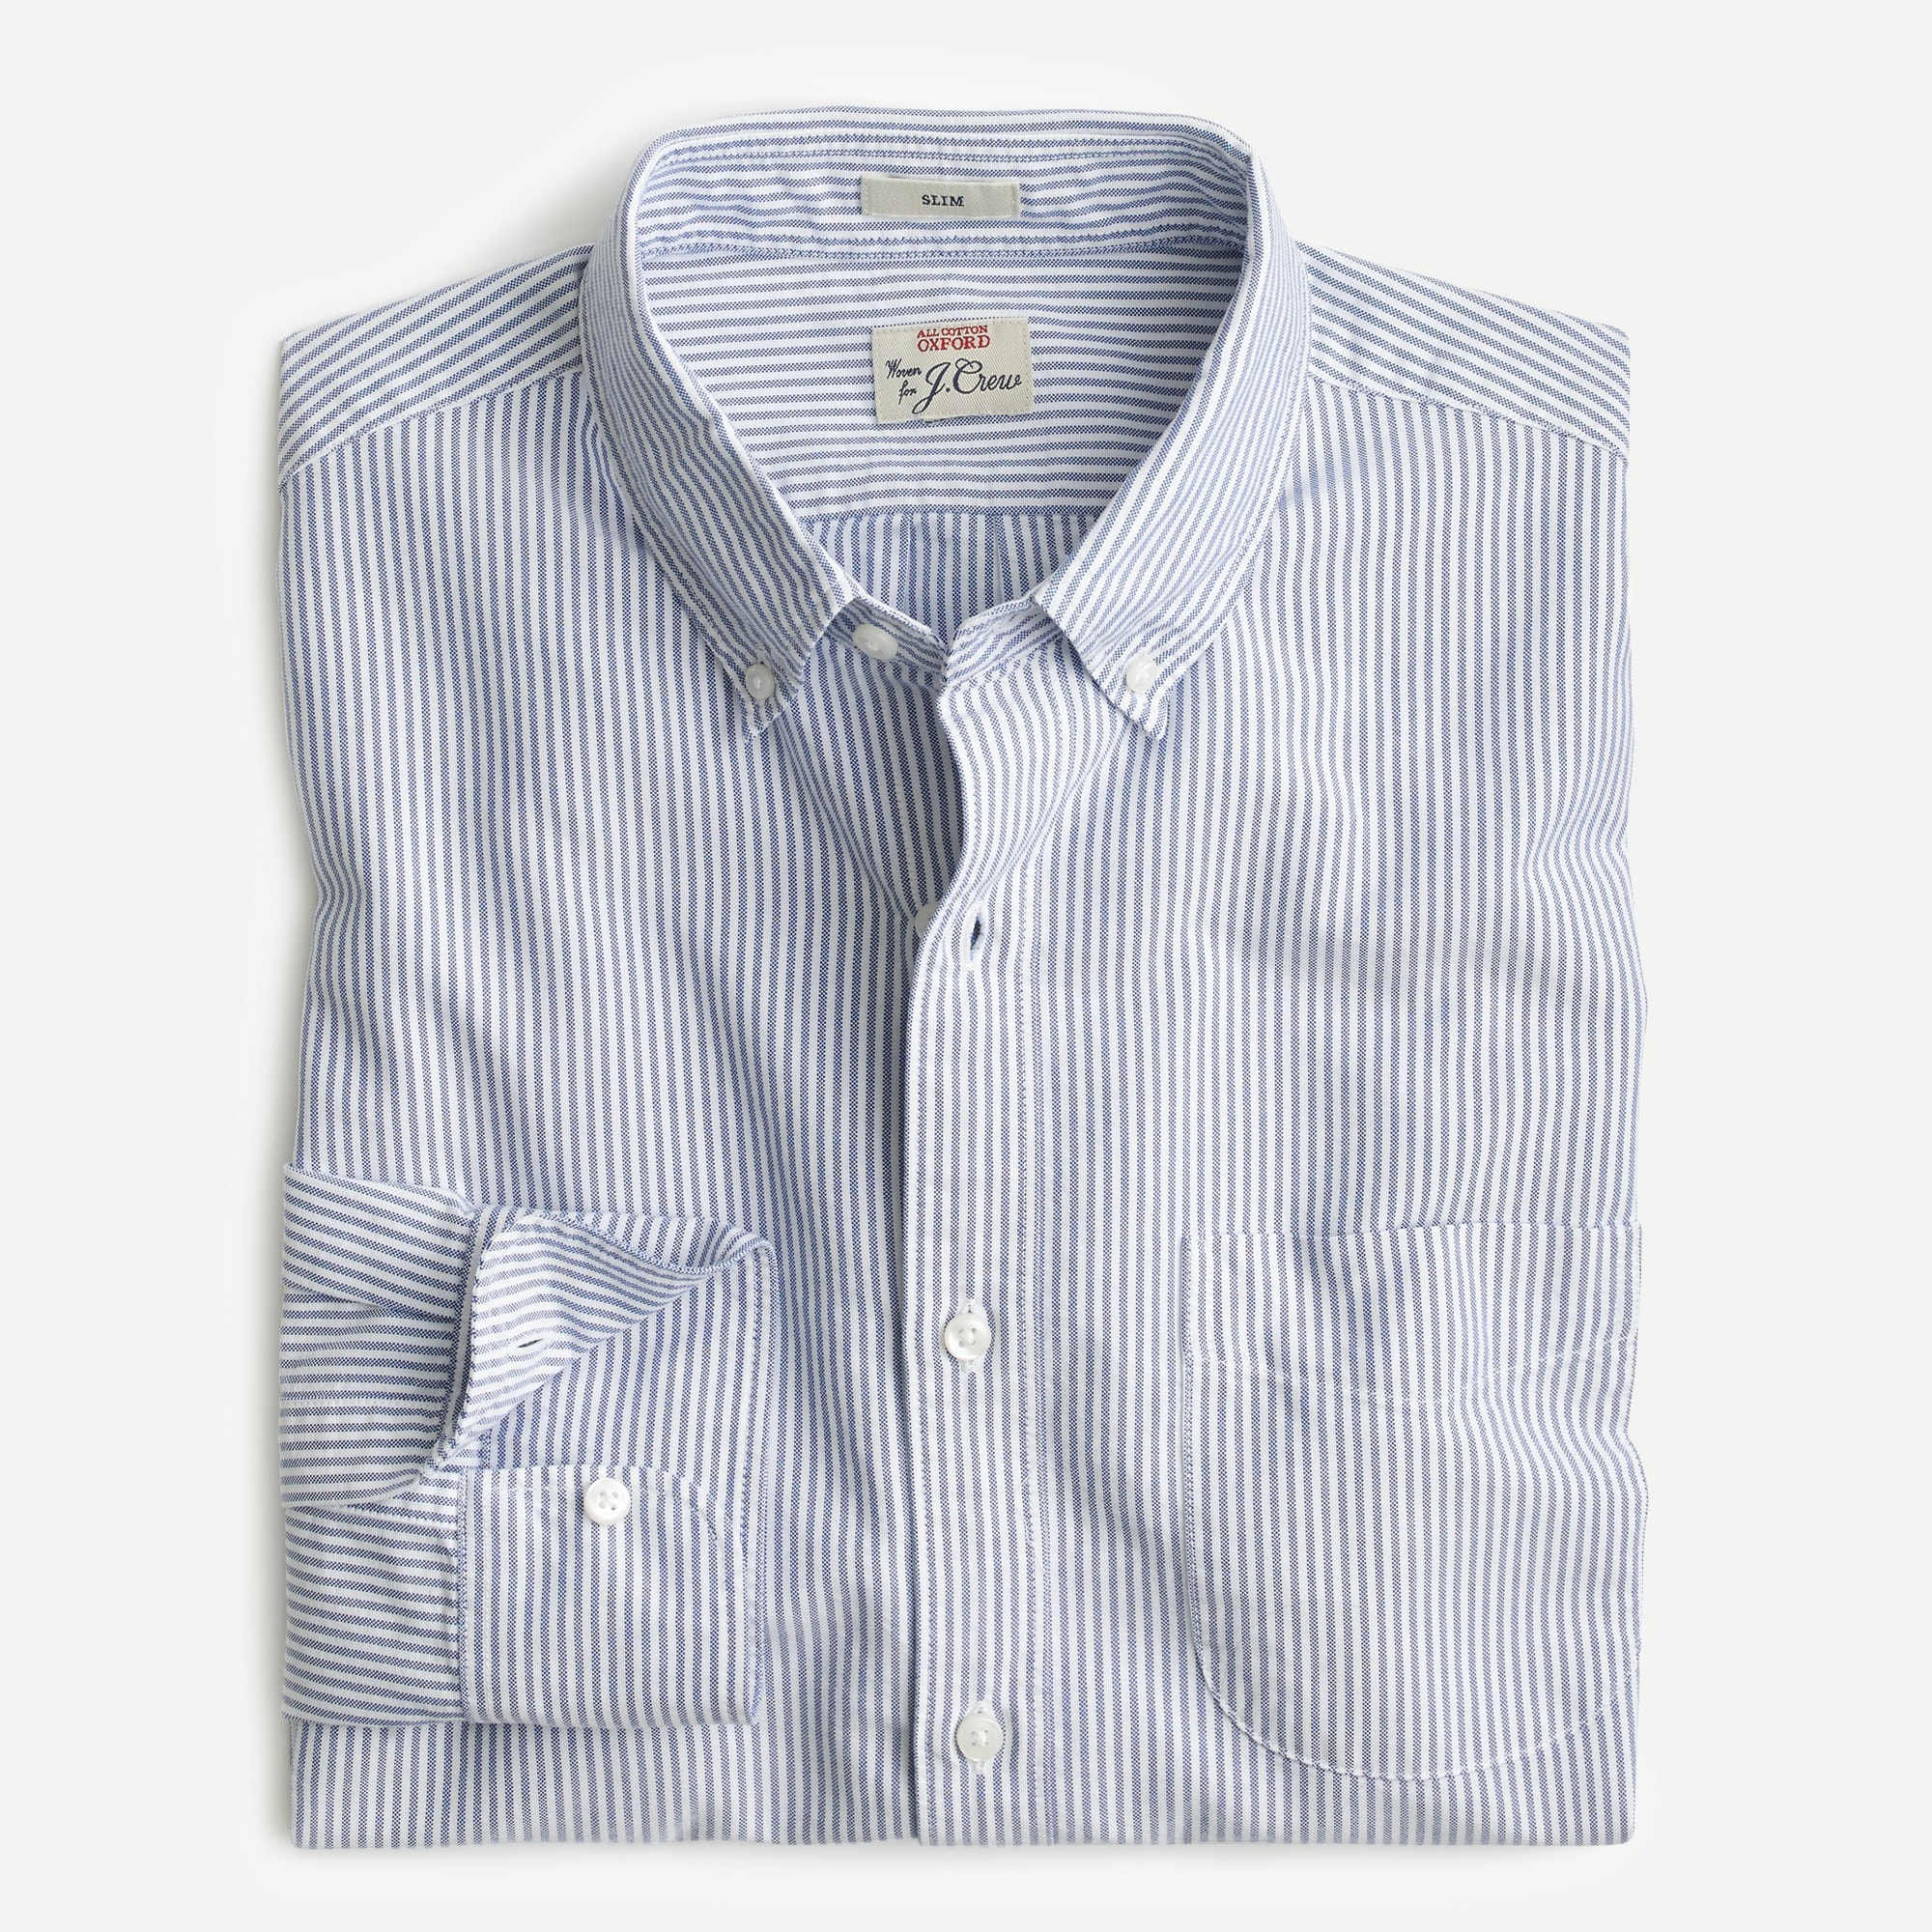 mens Slim American Pima cotton oxford shirt with mechanical stretch in stripe